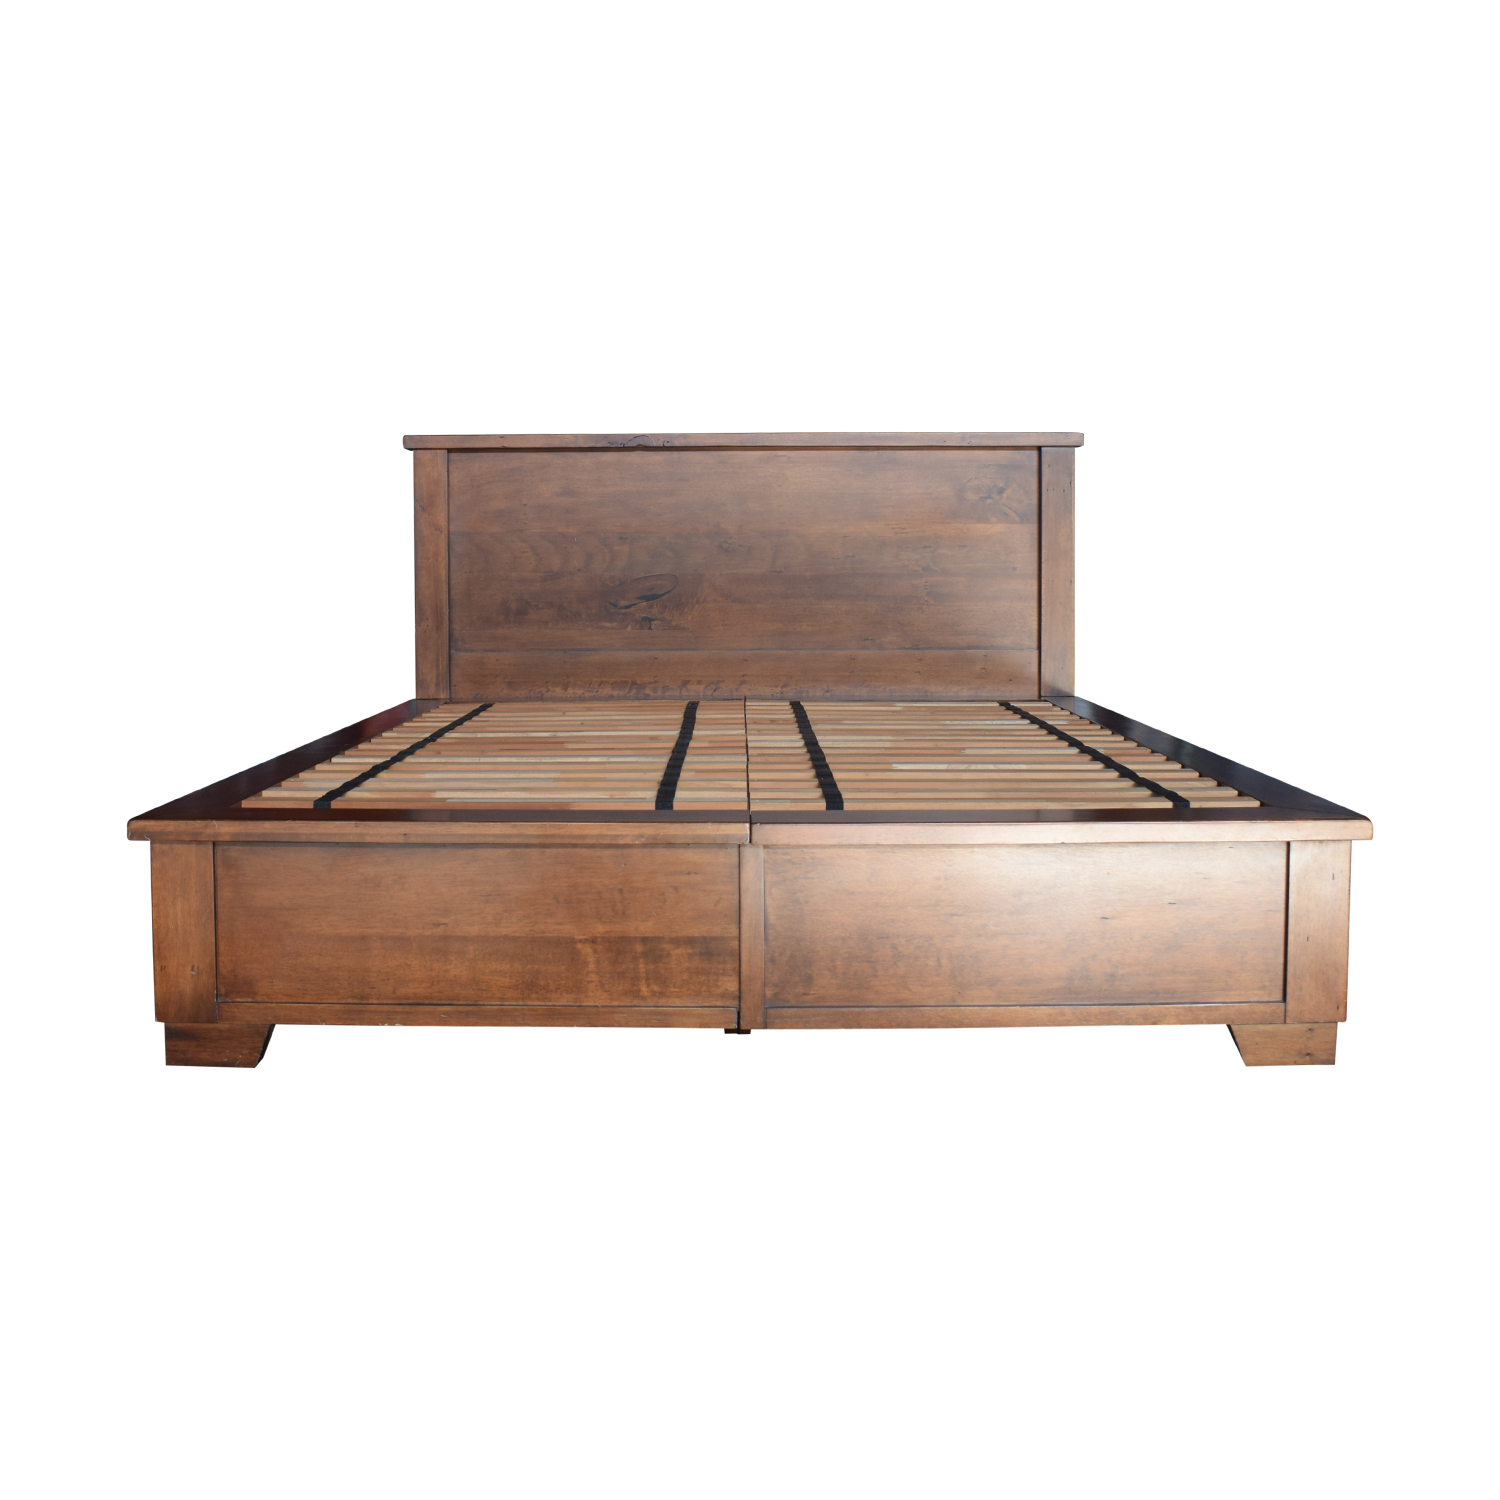 3% OFF - Pottery Barn Pottery Barn Sumatra Wood King Platform Bed with  Storage / Beds